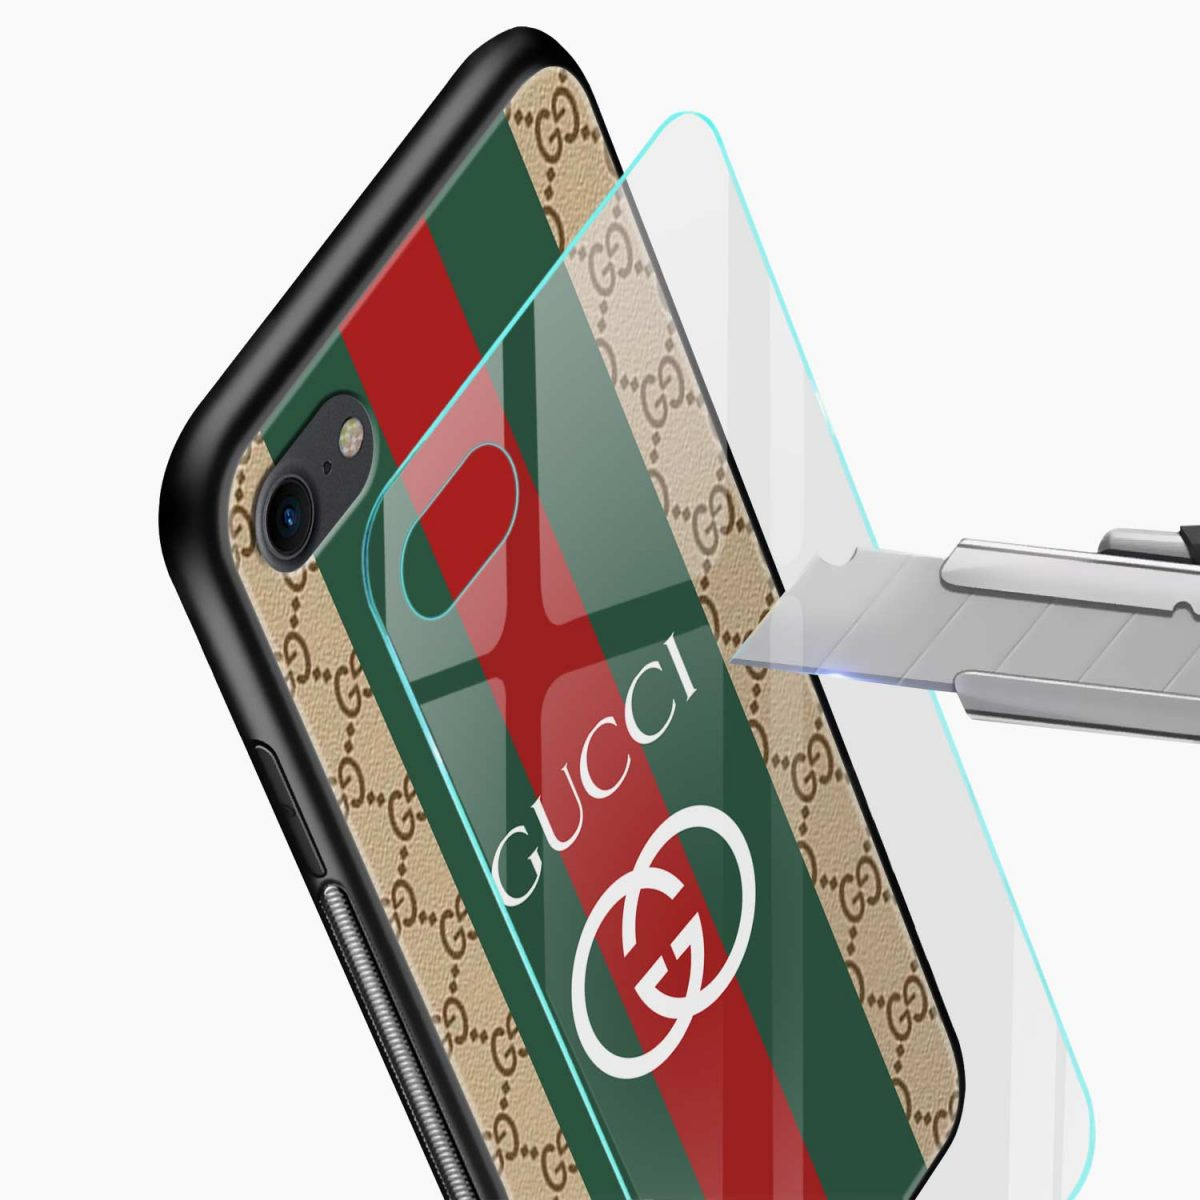 gucci strips pattern glass view apple iphone 6 7 8 se back cover